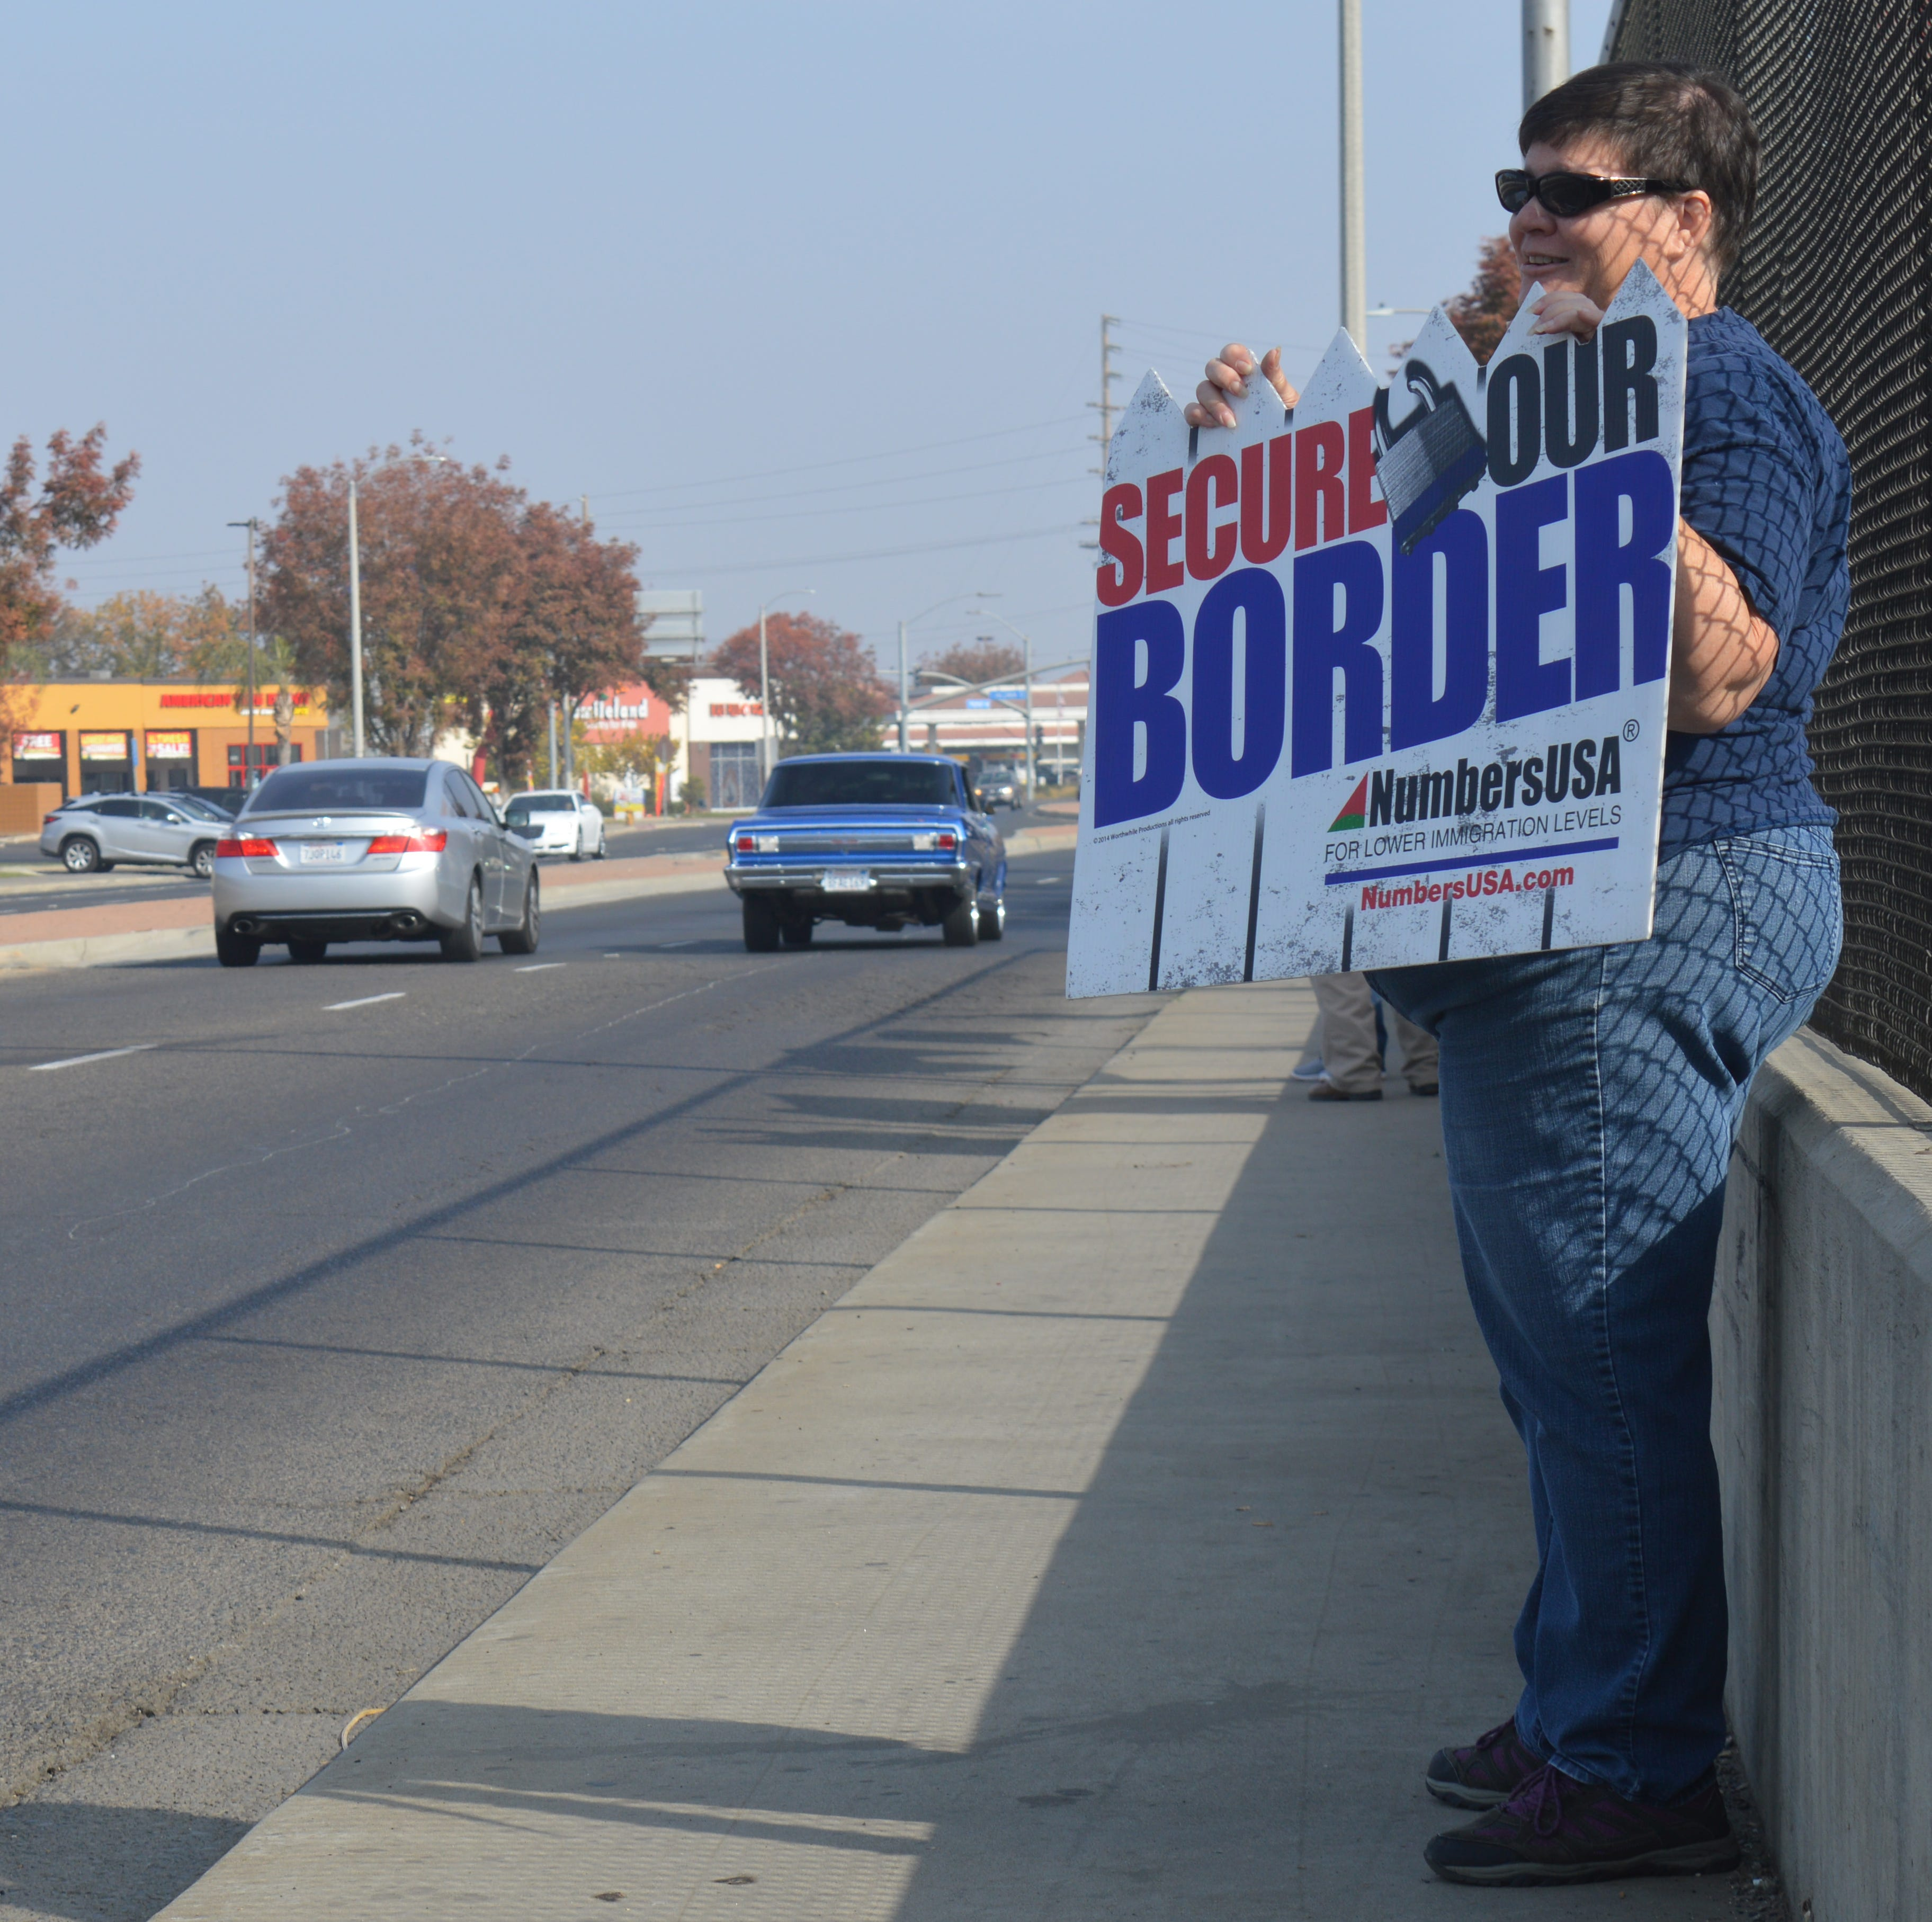 Border control protesters hit the streets in Tulare